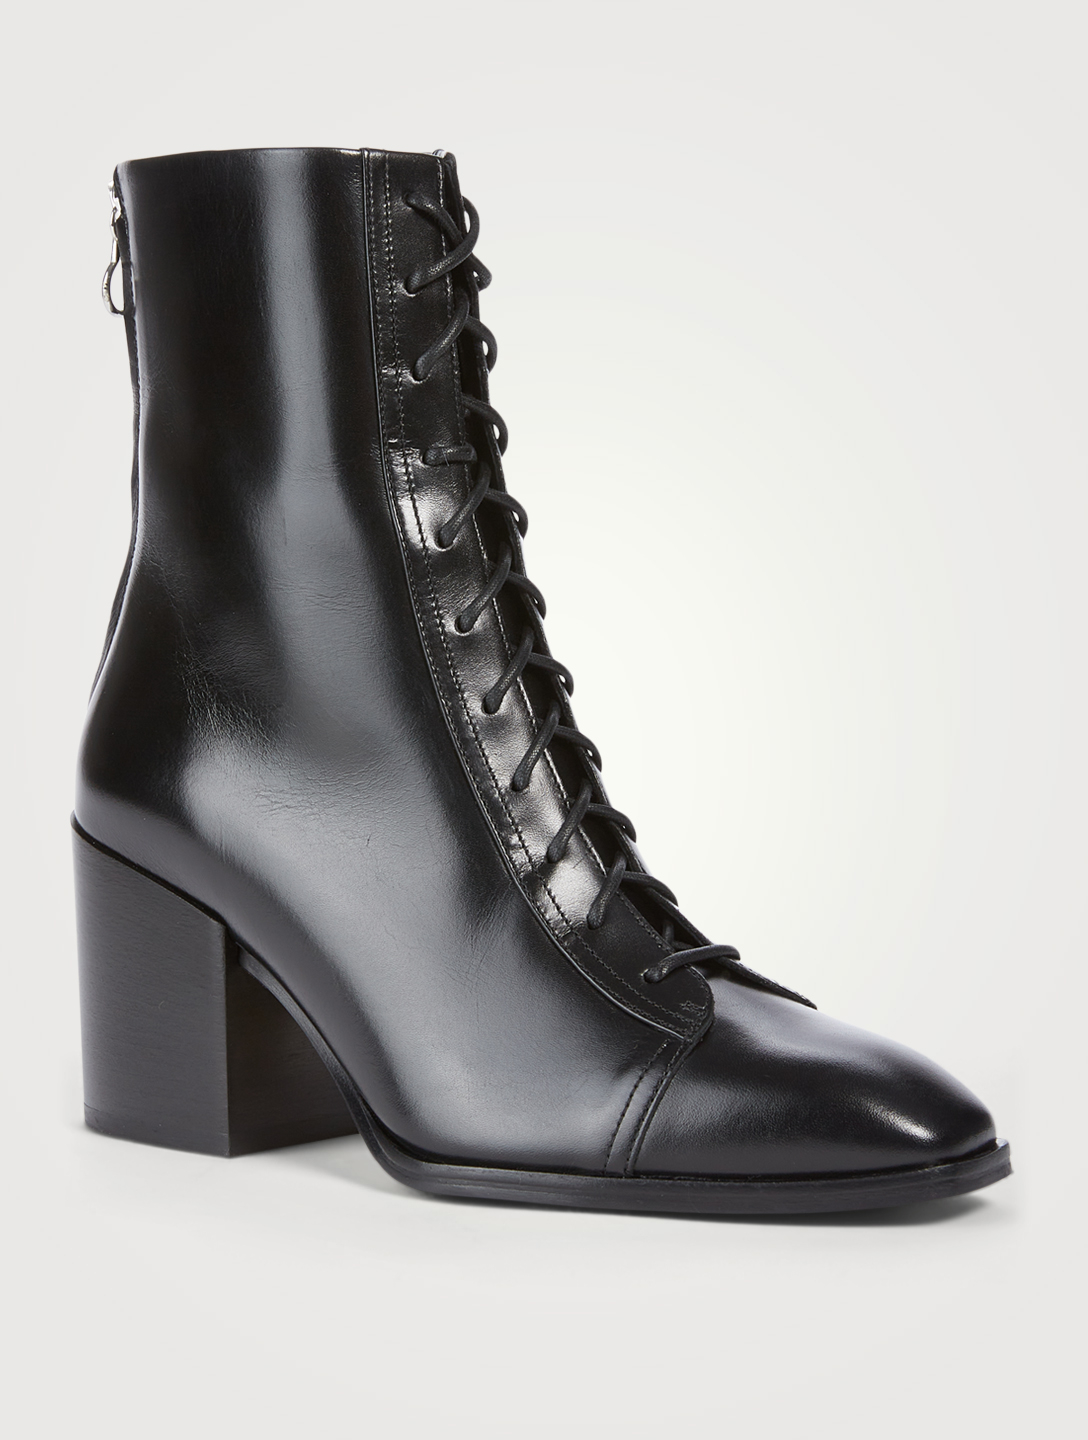 AEYDE Lotta Leather Heeled Lace-Up Ankle Boots Women's Black